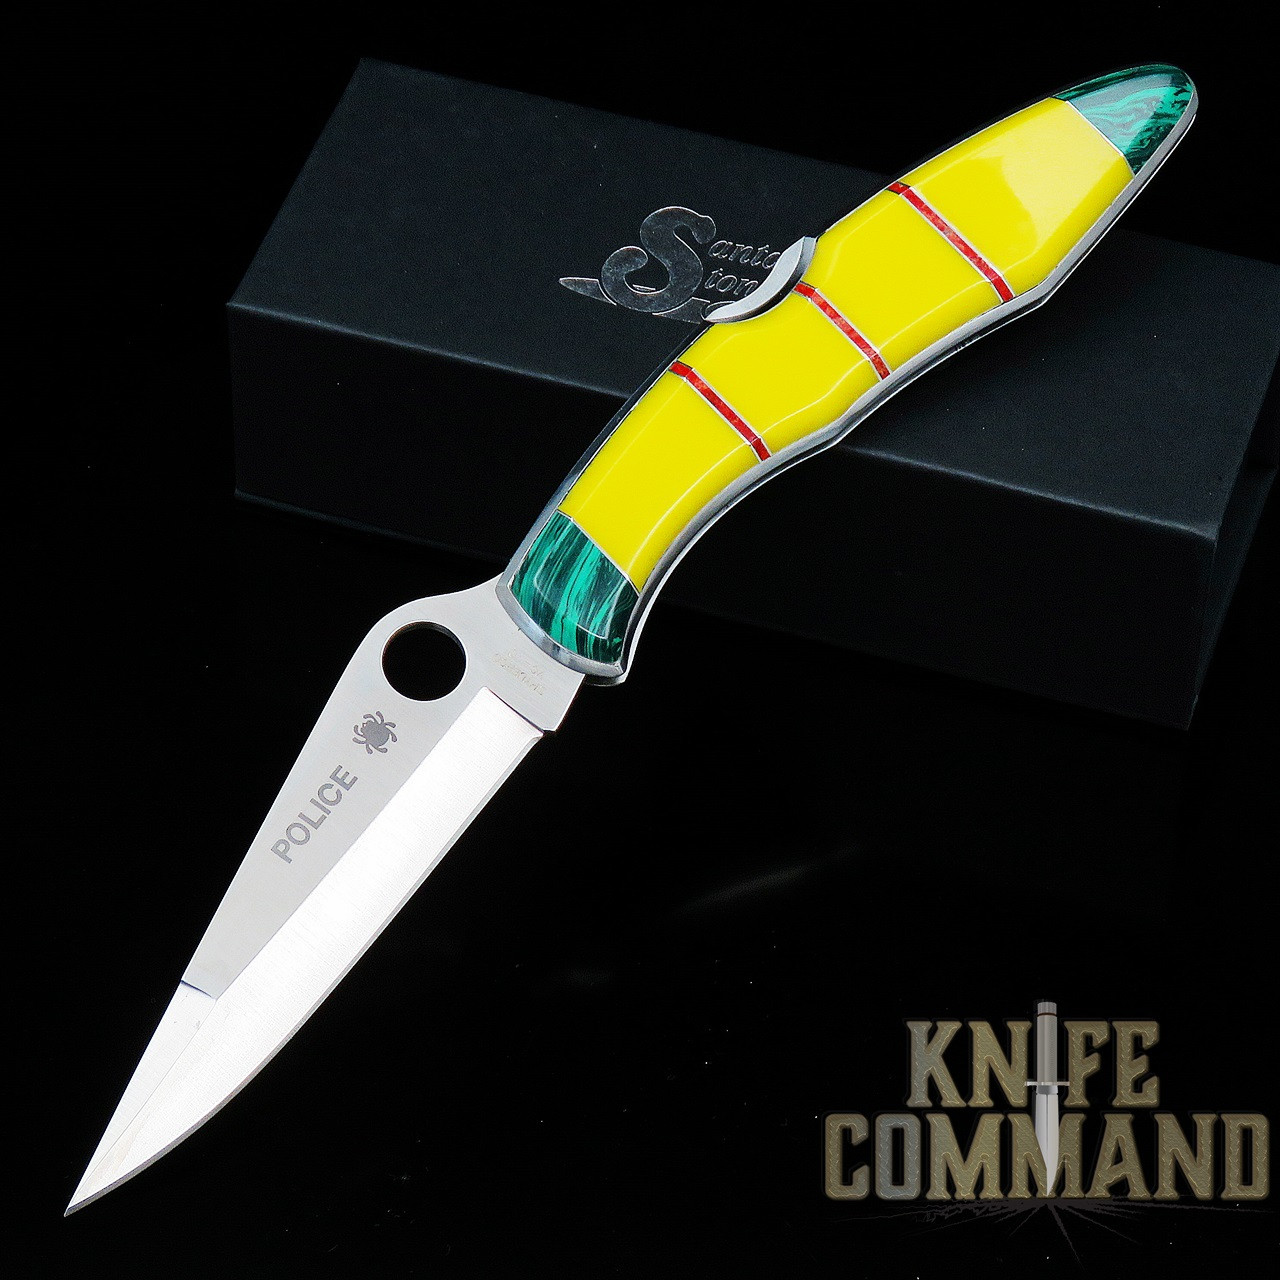 Spyderco Police Santa Fe Stoneworks Vietnam Service Ribbon Knife.  A Knife Command Exclusive.